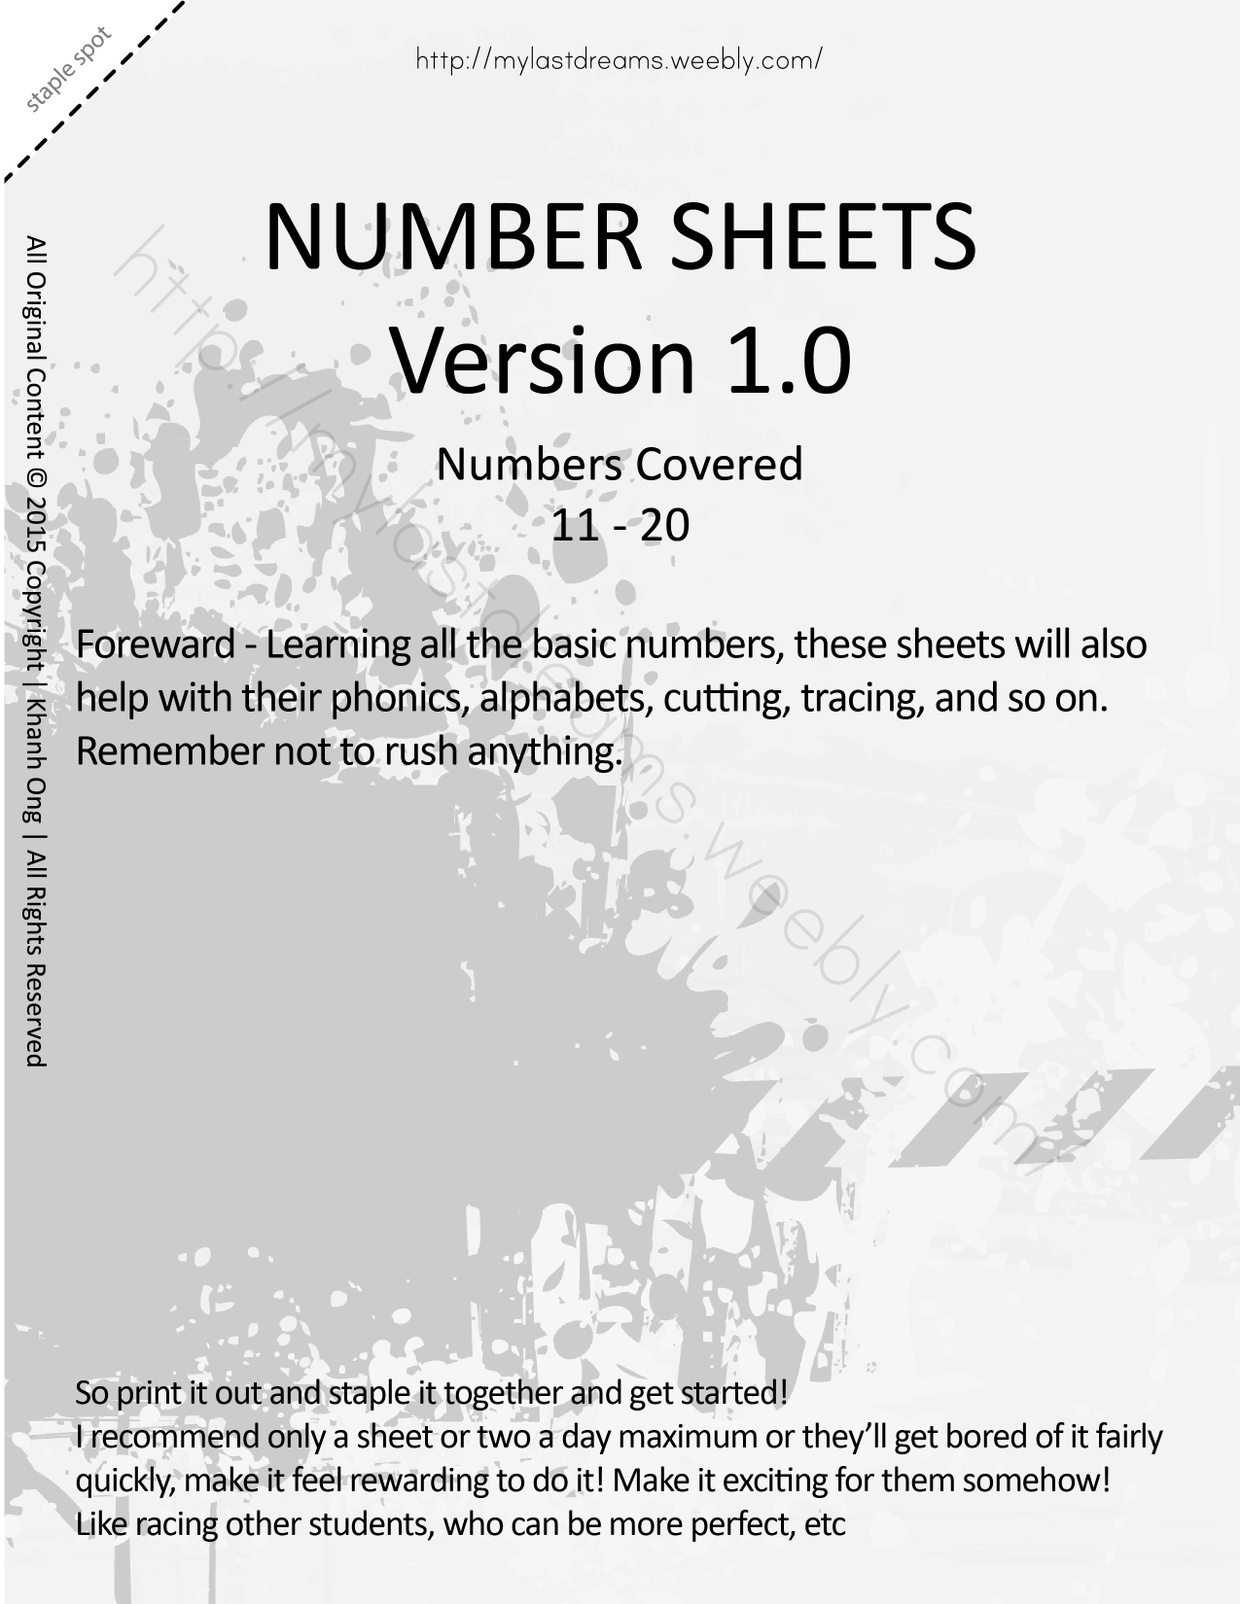 MLD - Basic Numbers Worksheets - Full Set - Letter Sized